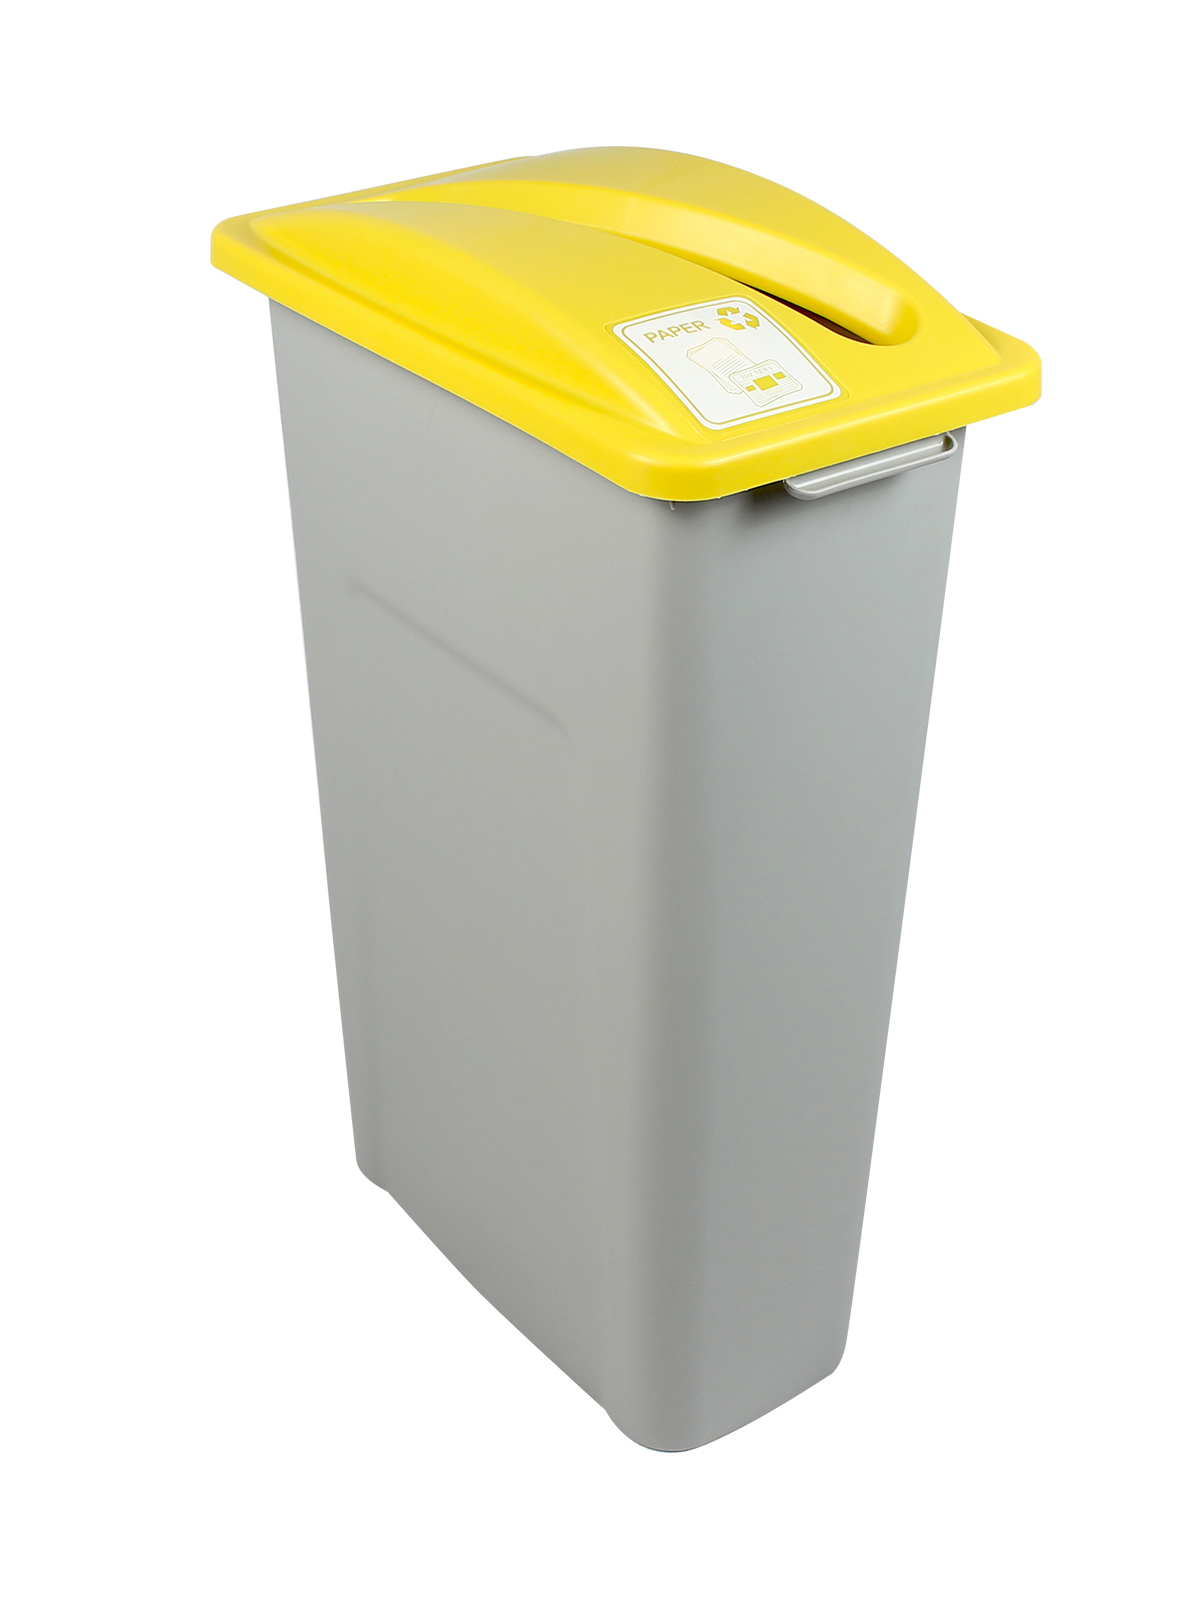 WASTE WATCHER - Single - Paper - Slot - Grey-Yellow